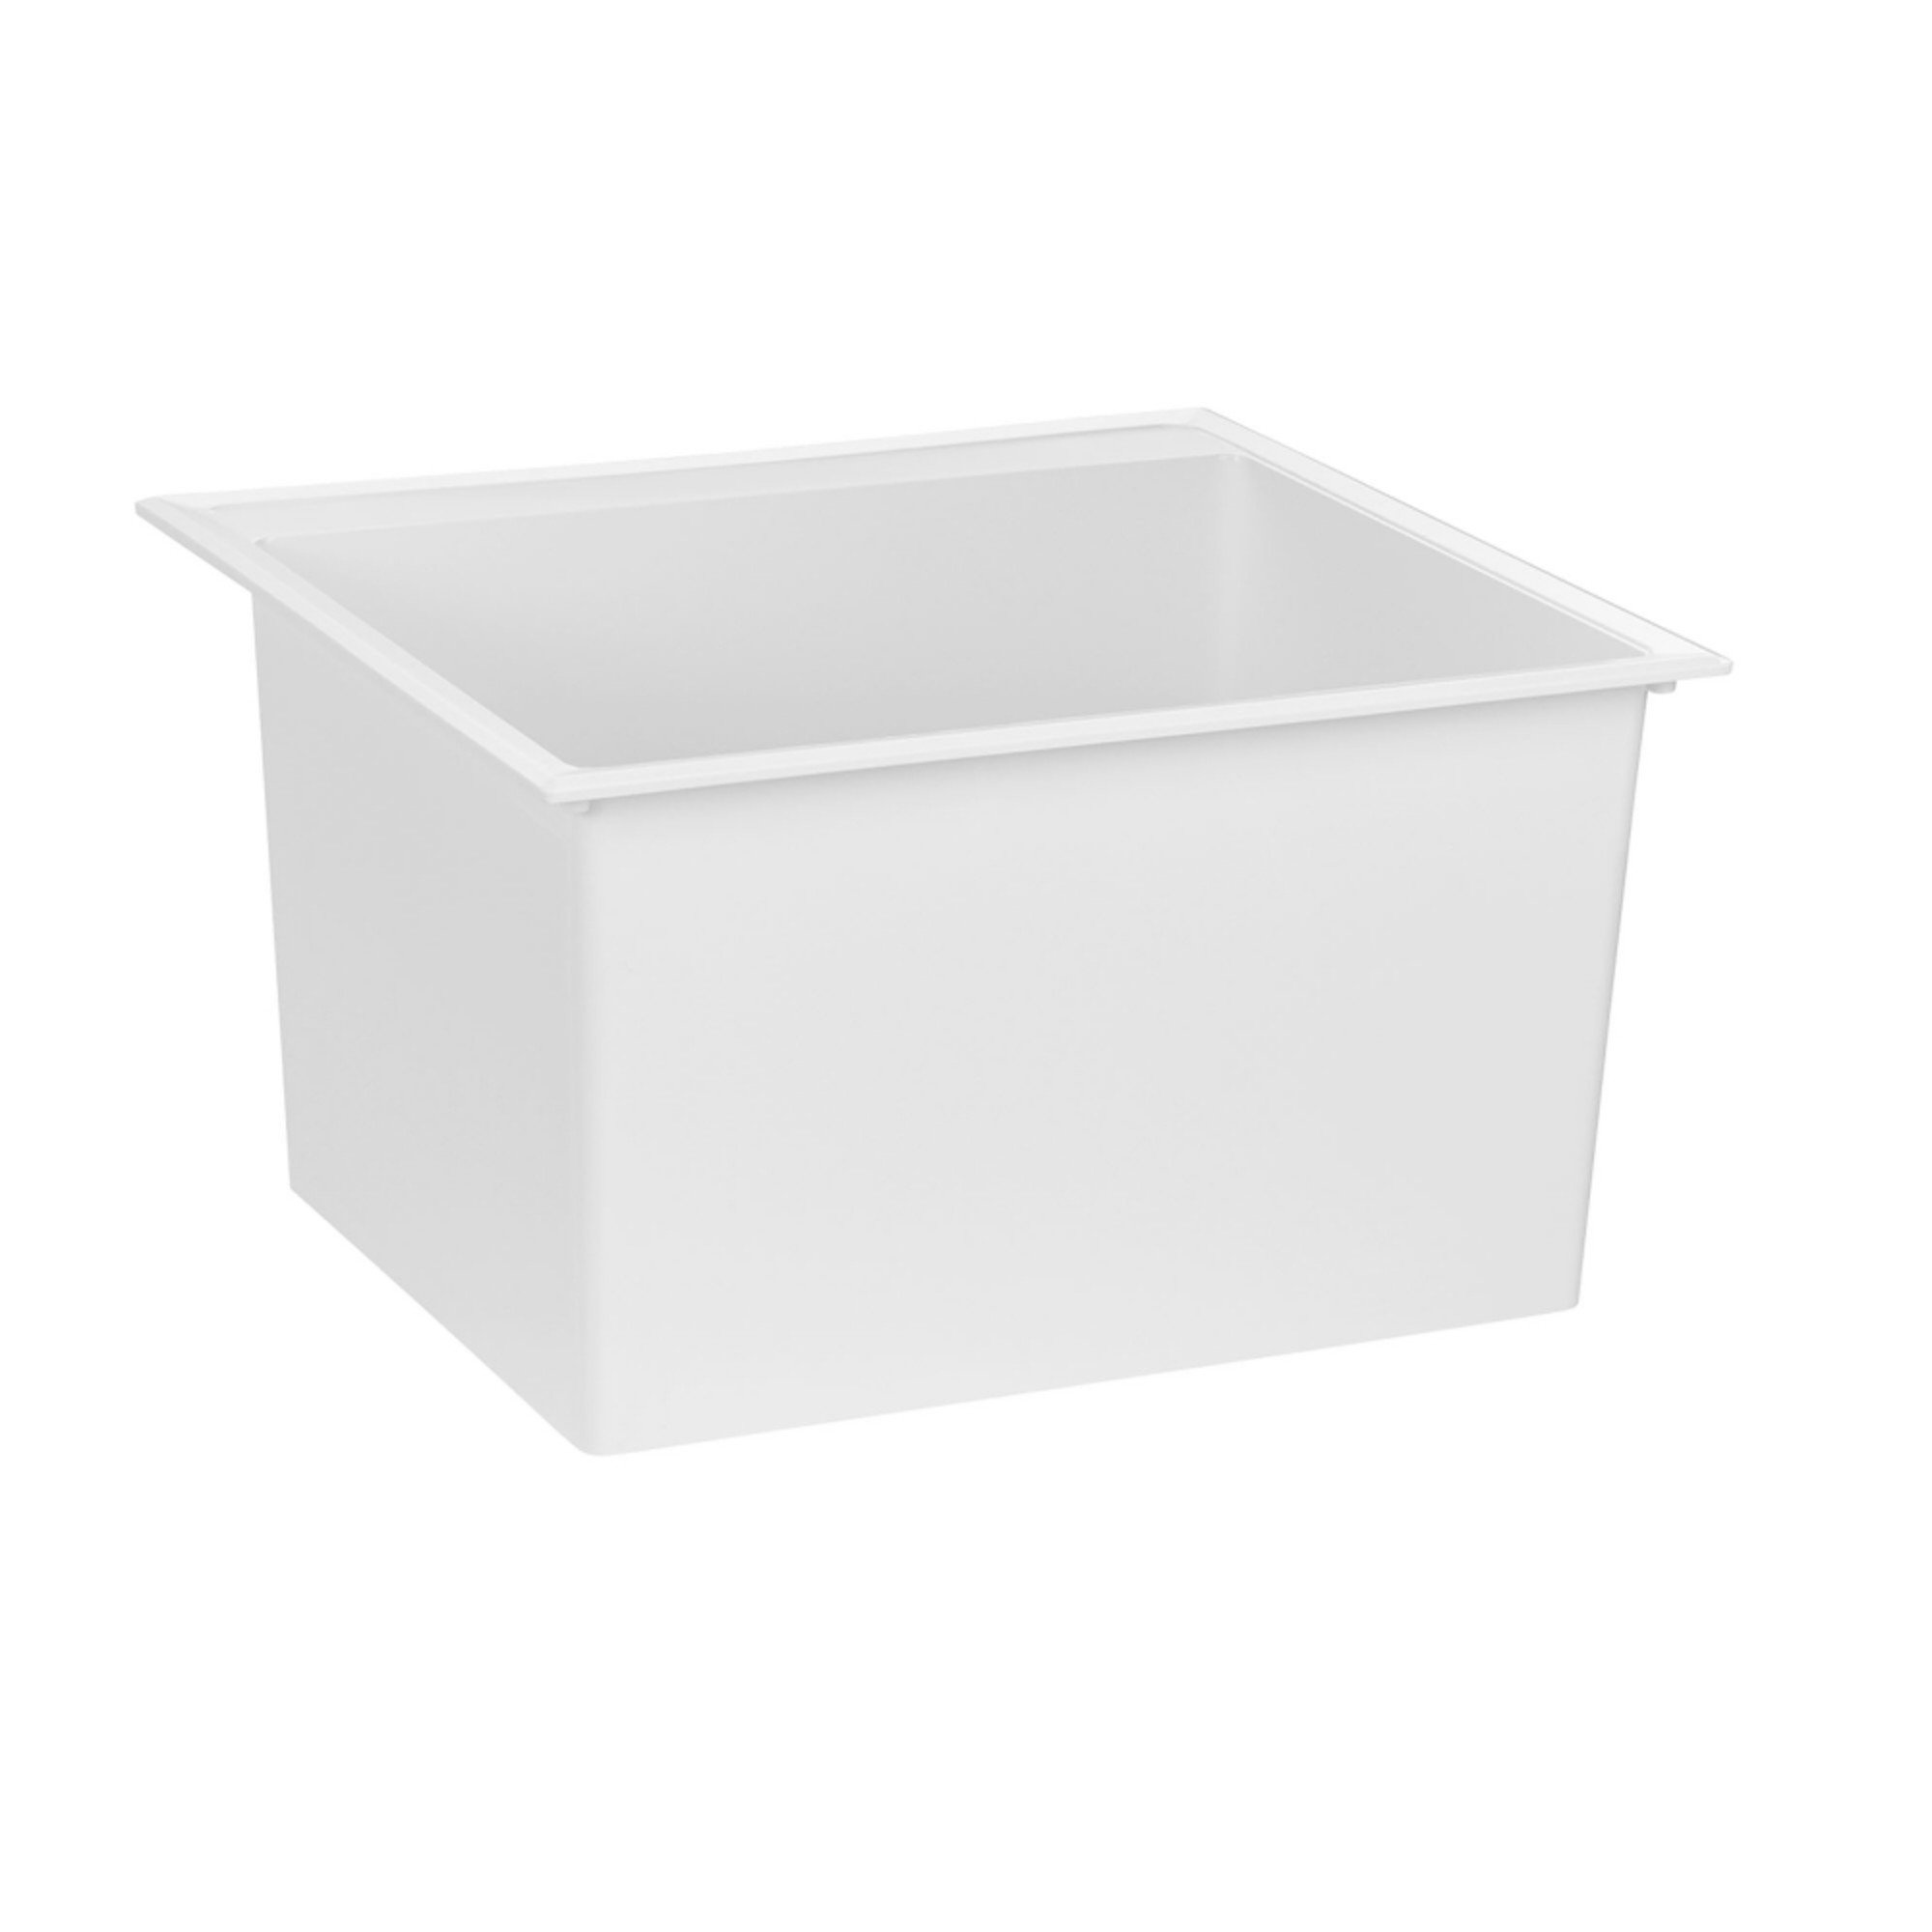 Crane Plumbing DL1 Drop-In Laundry Tub, White by Crane Plumbing